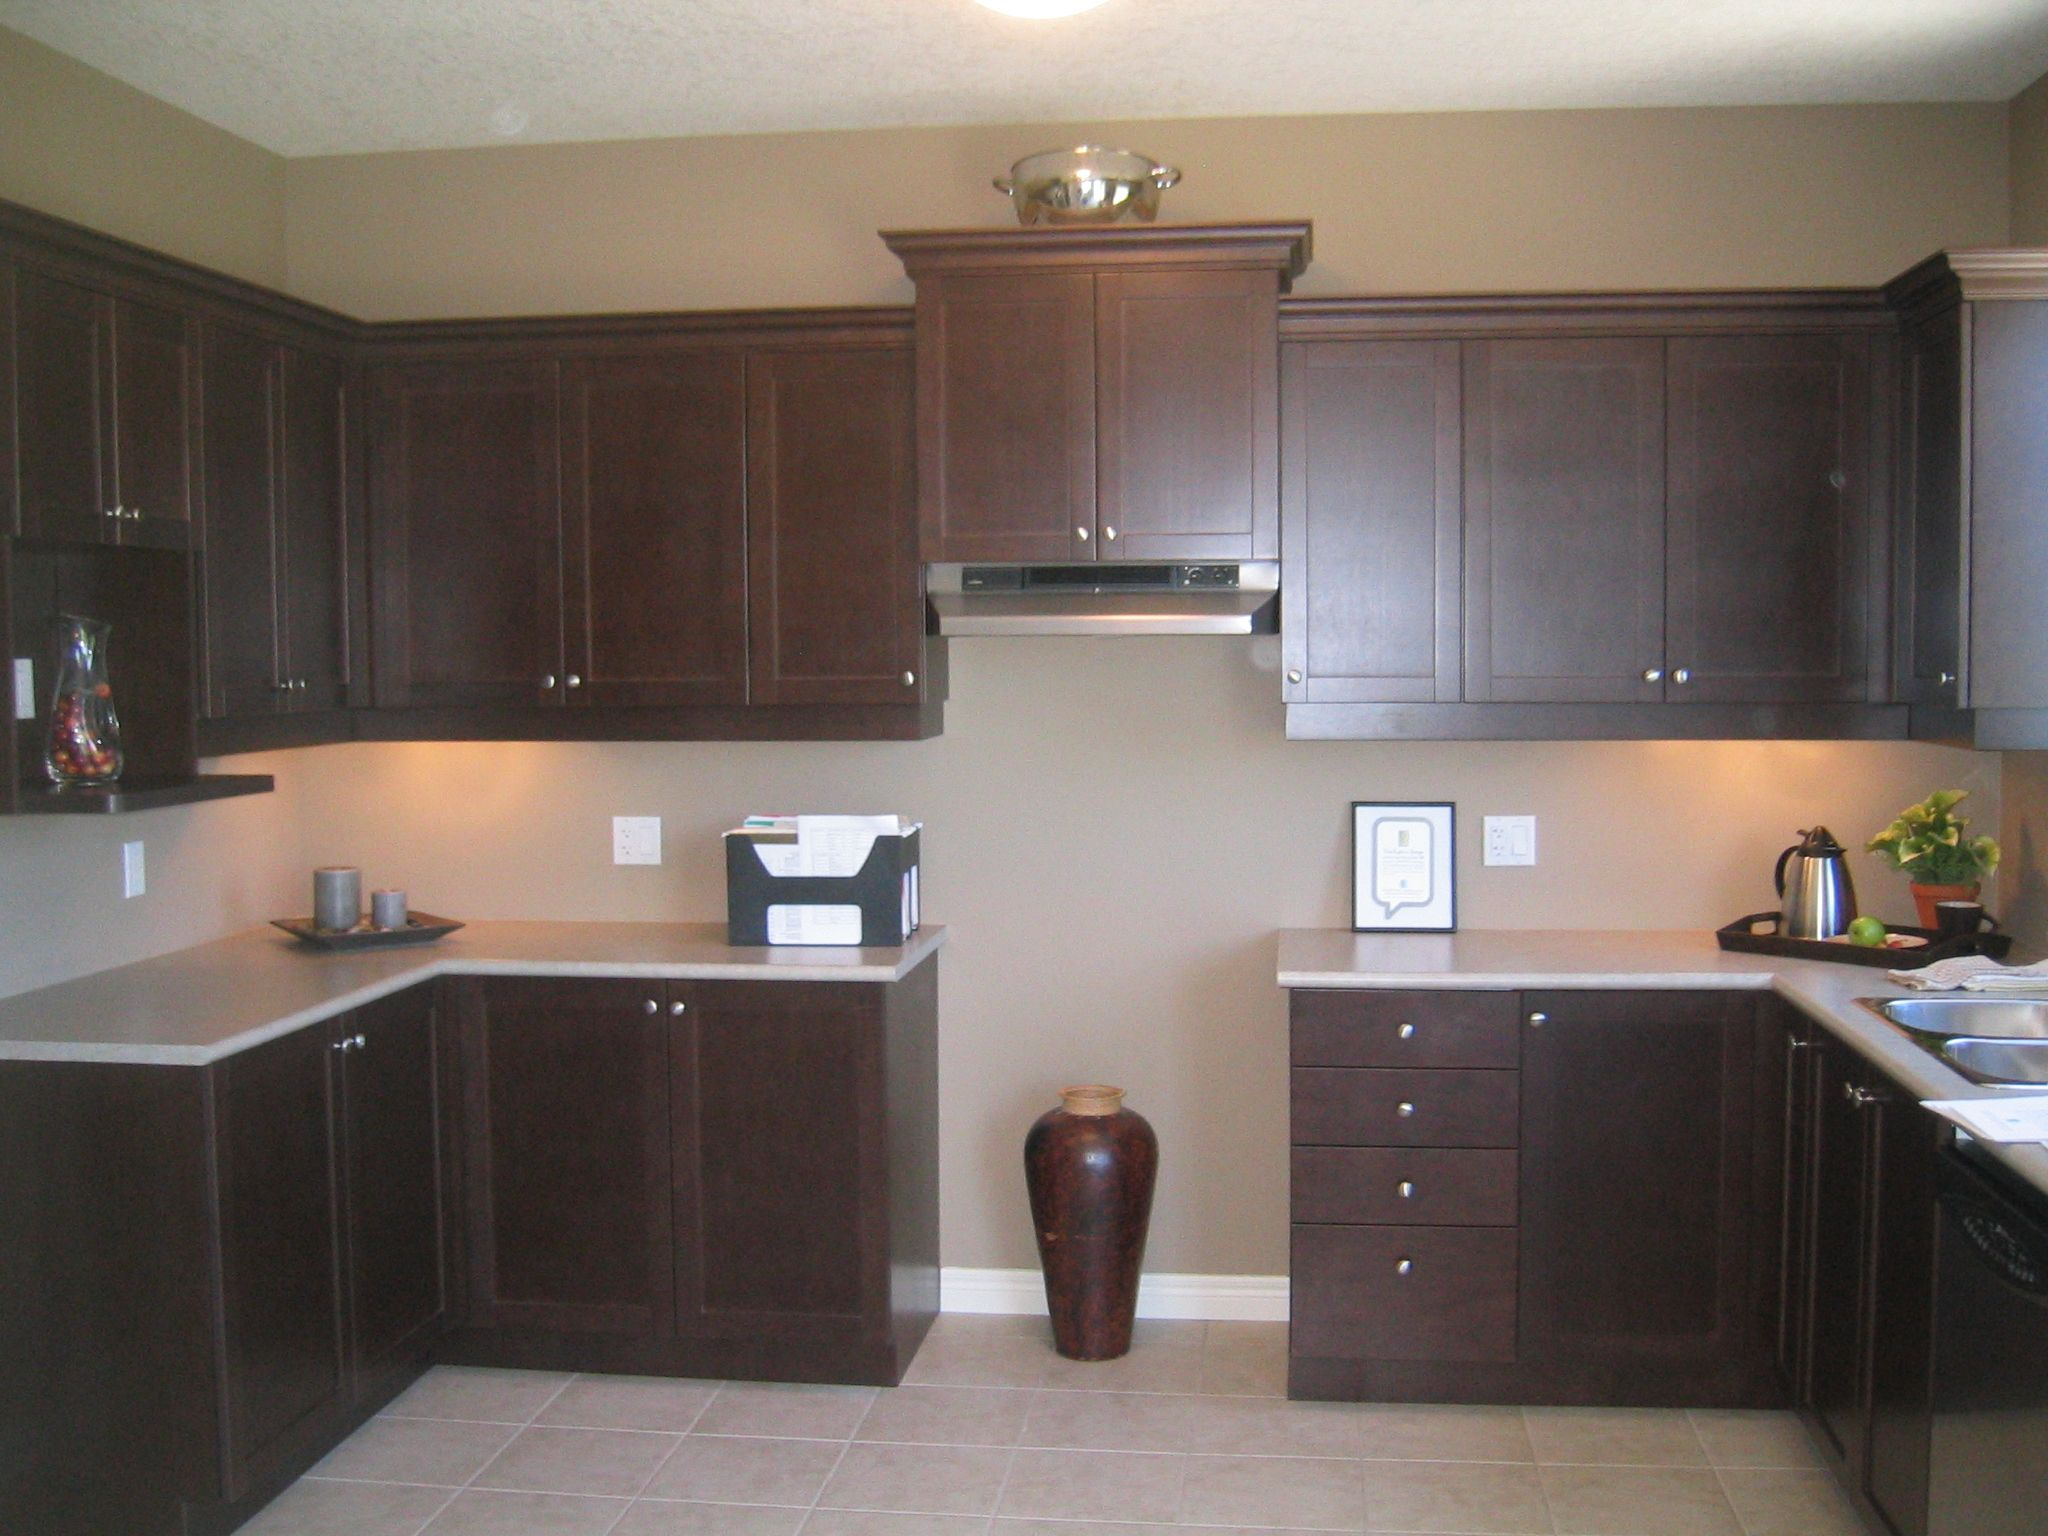 coffee color kitchen cabinets what color to paint kitchen walls with espresso cabinets 13677